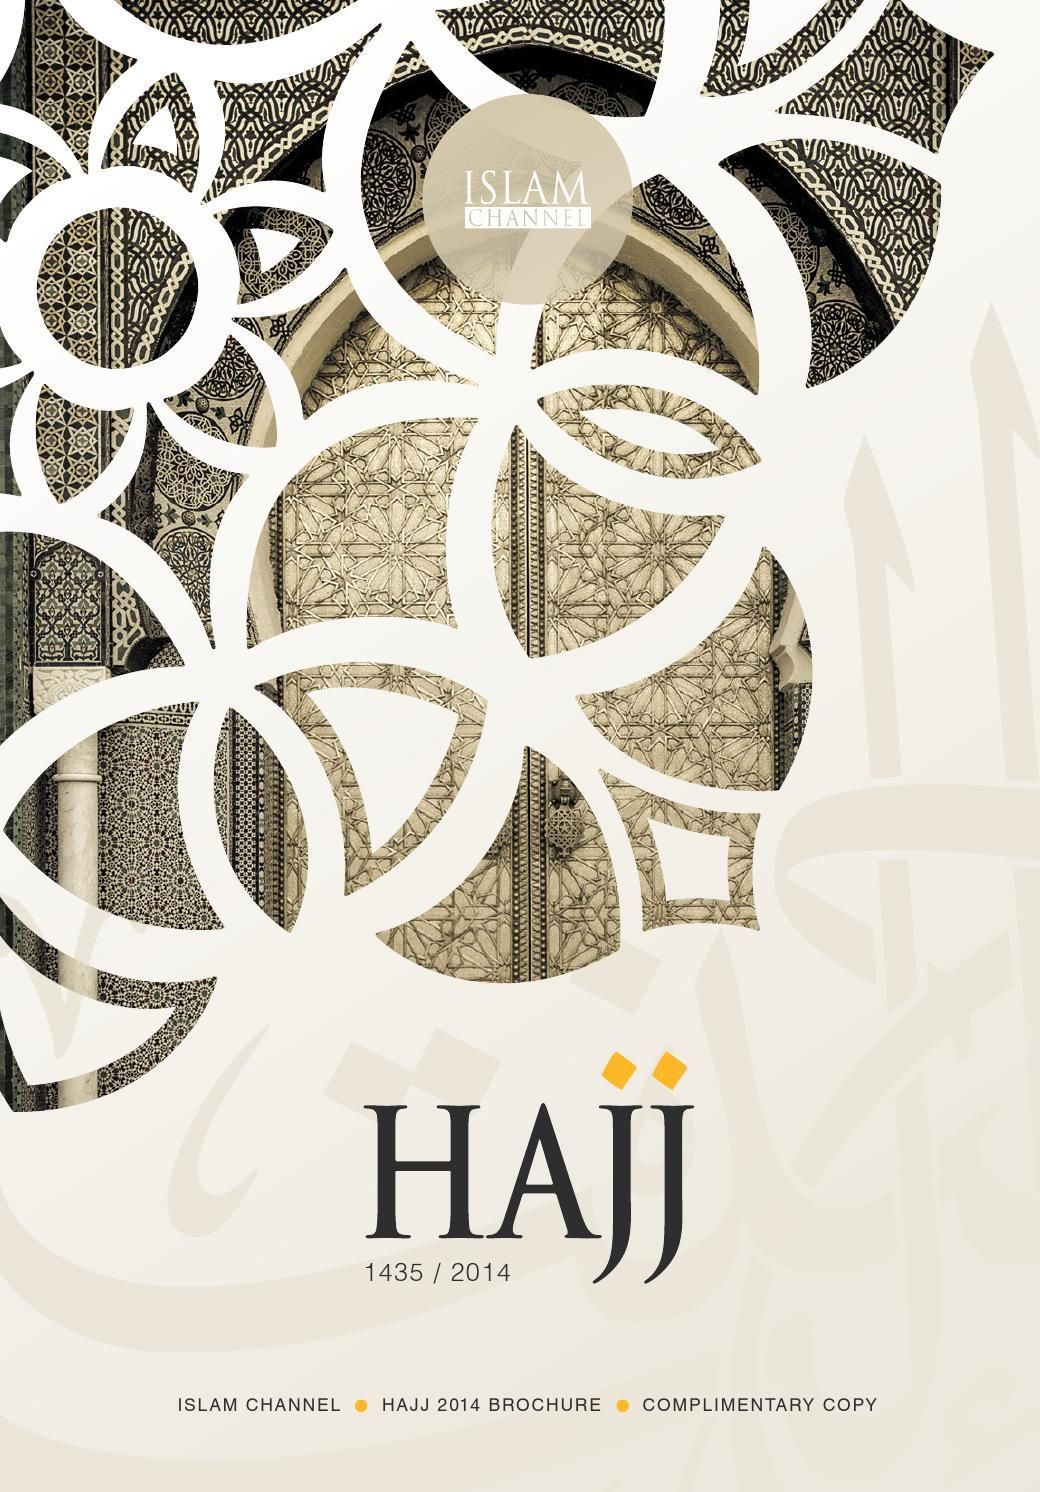 Islam Channel Hajj Brochure 2014